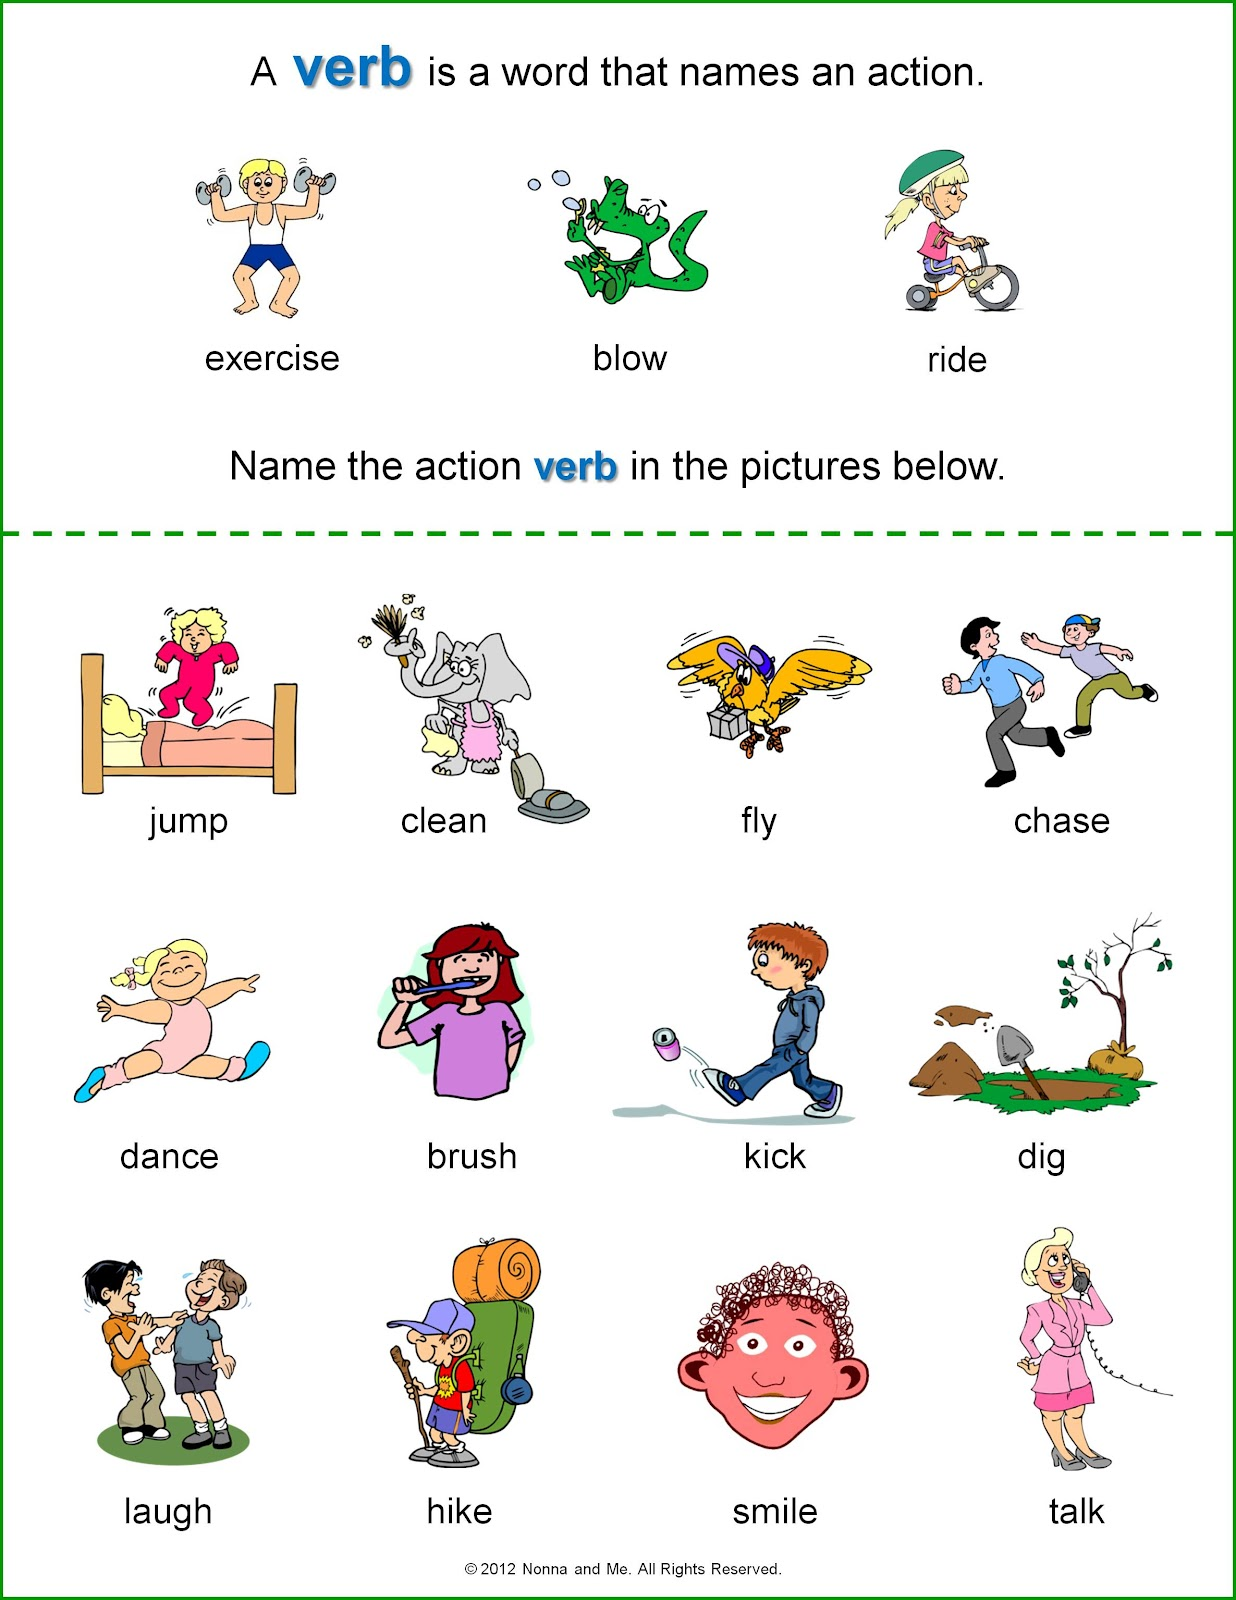 Worksheet Verb Worksheets For Grade 2 action verb worksheet for 2nd grade blasting off with verbs math fun activities grade